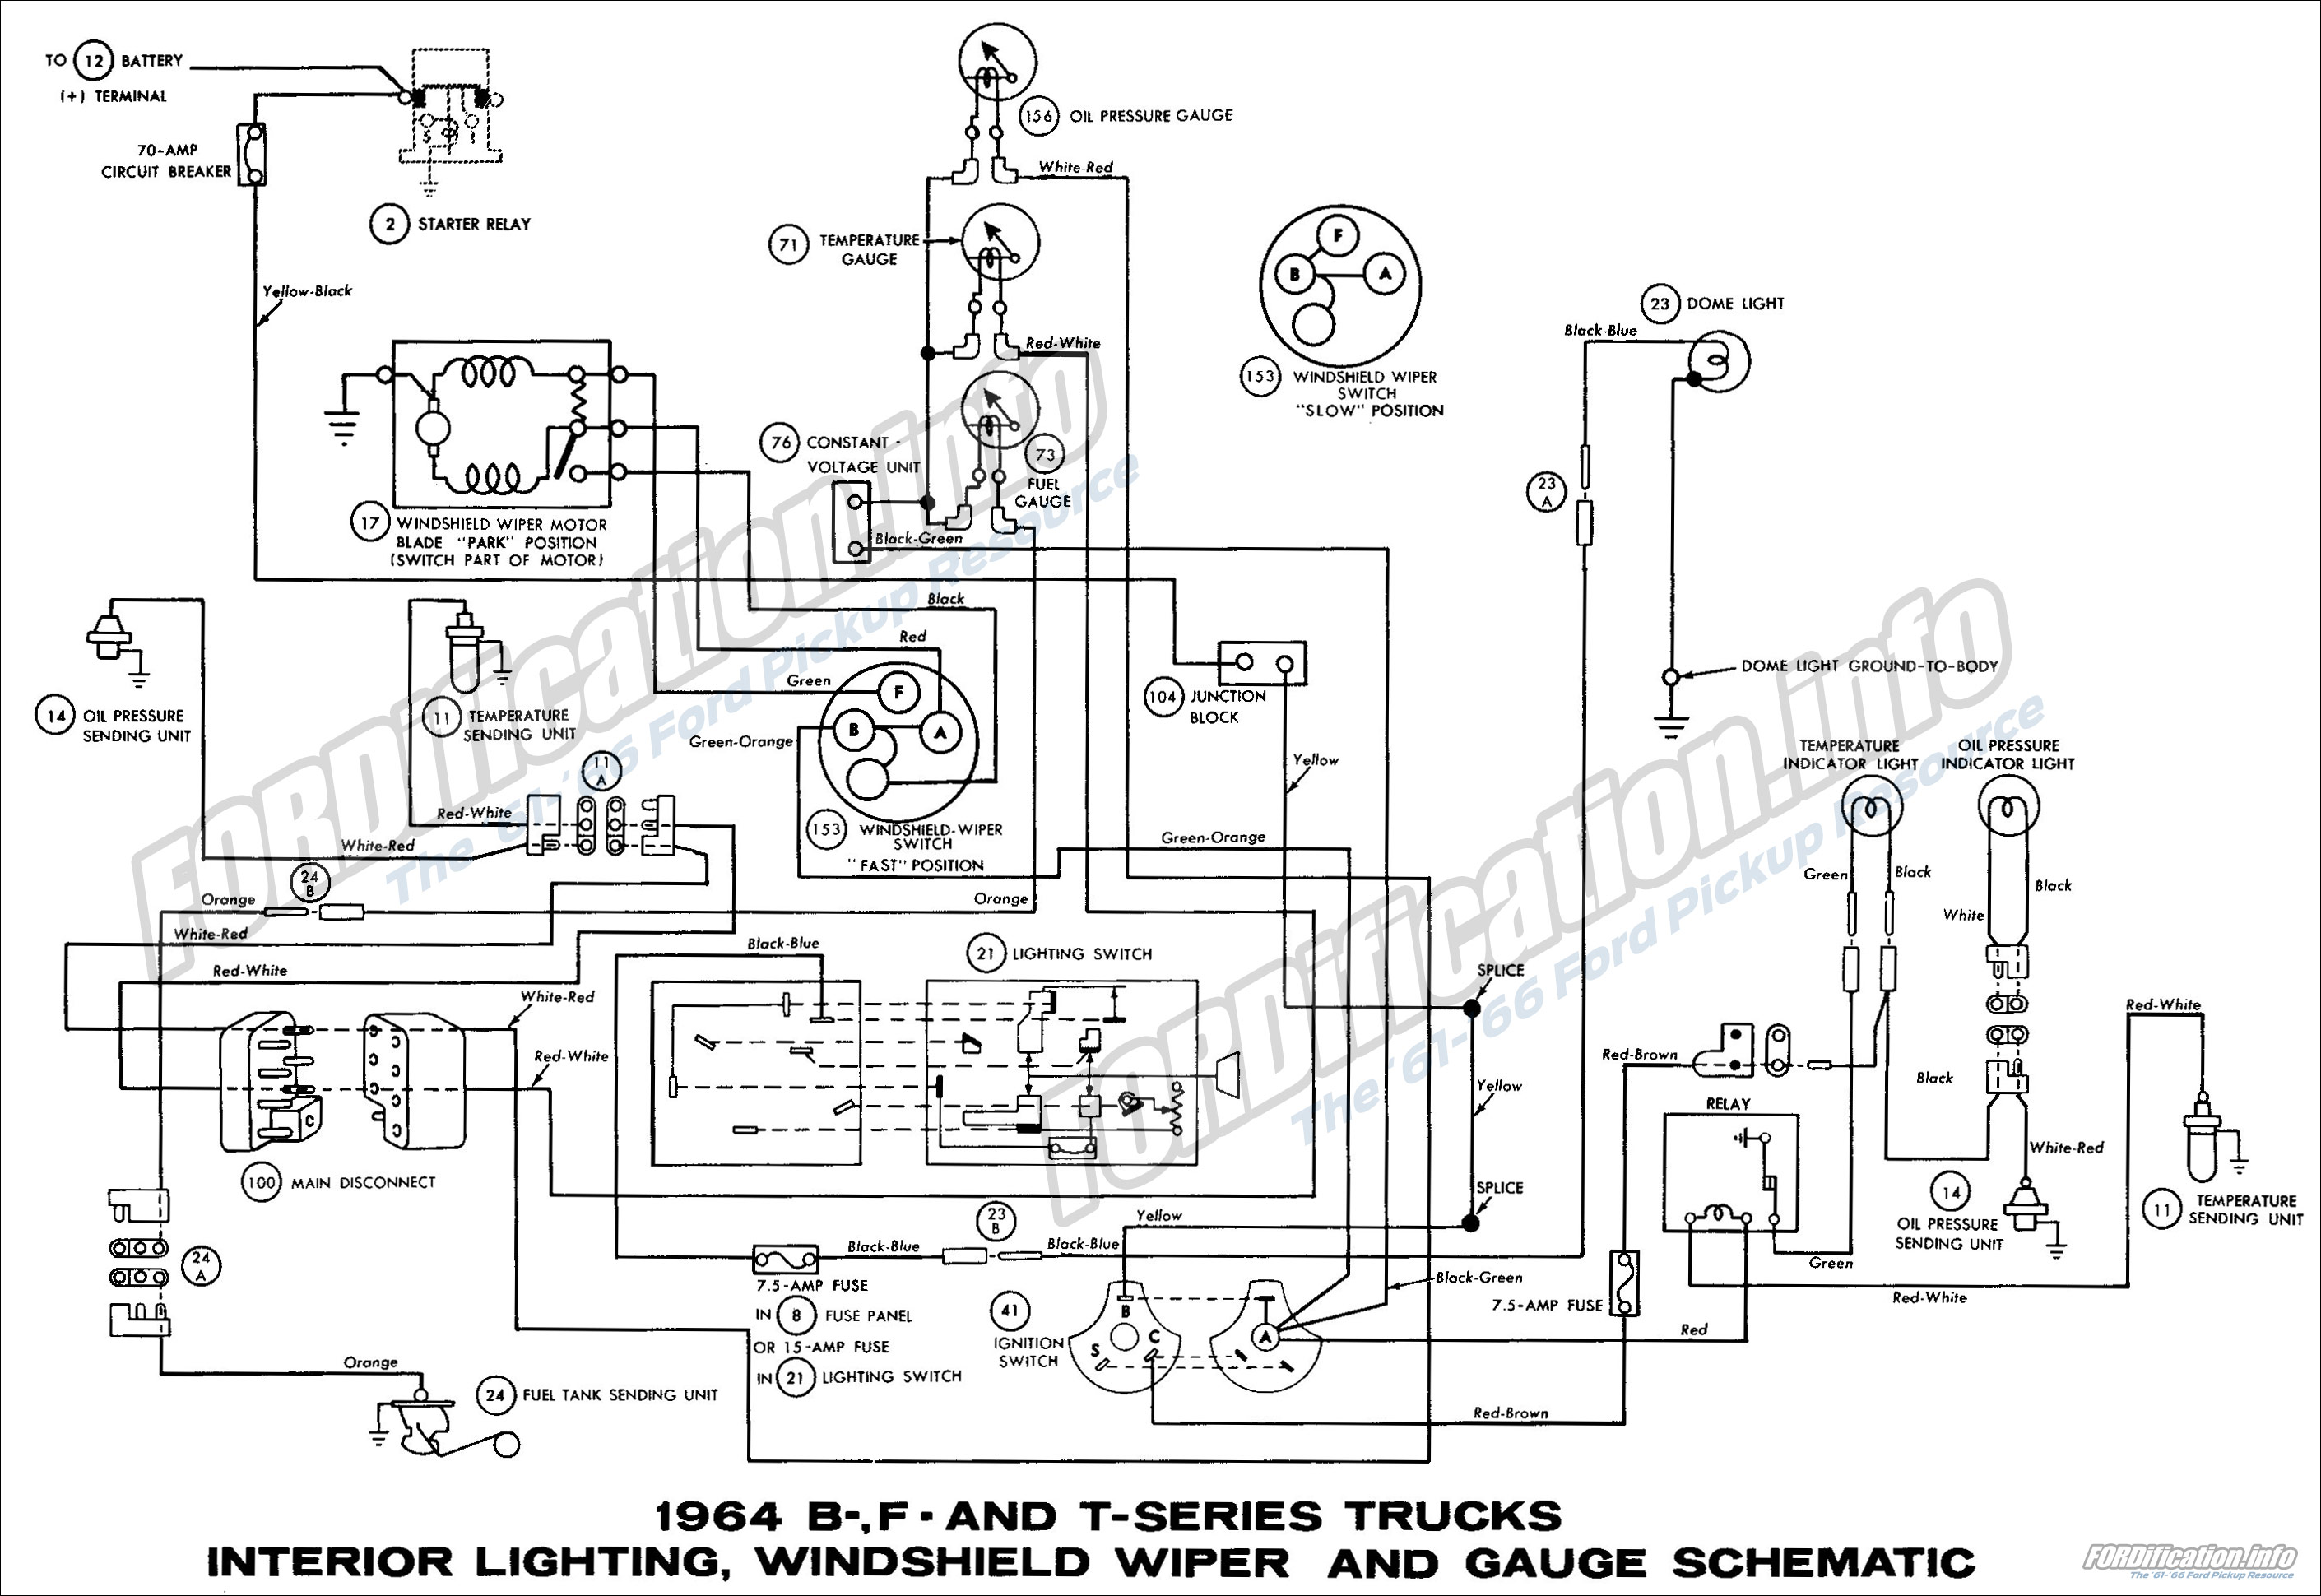 1964_10 1964 ford truck wiring diagrams fordification info the '61 '66 Universal Wiper Motor Wiring Diagram at fashall.co